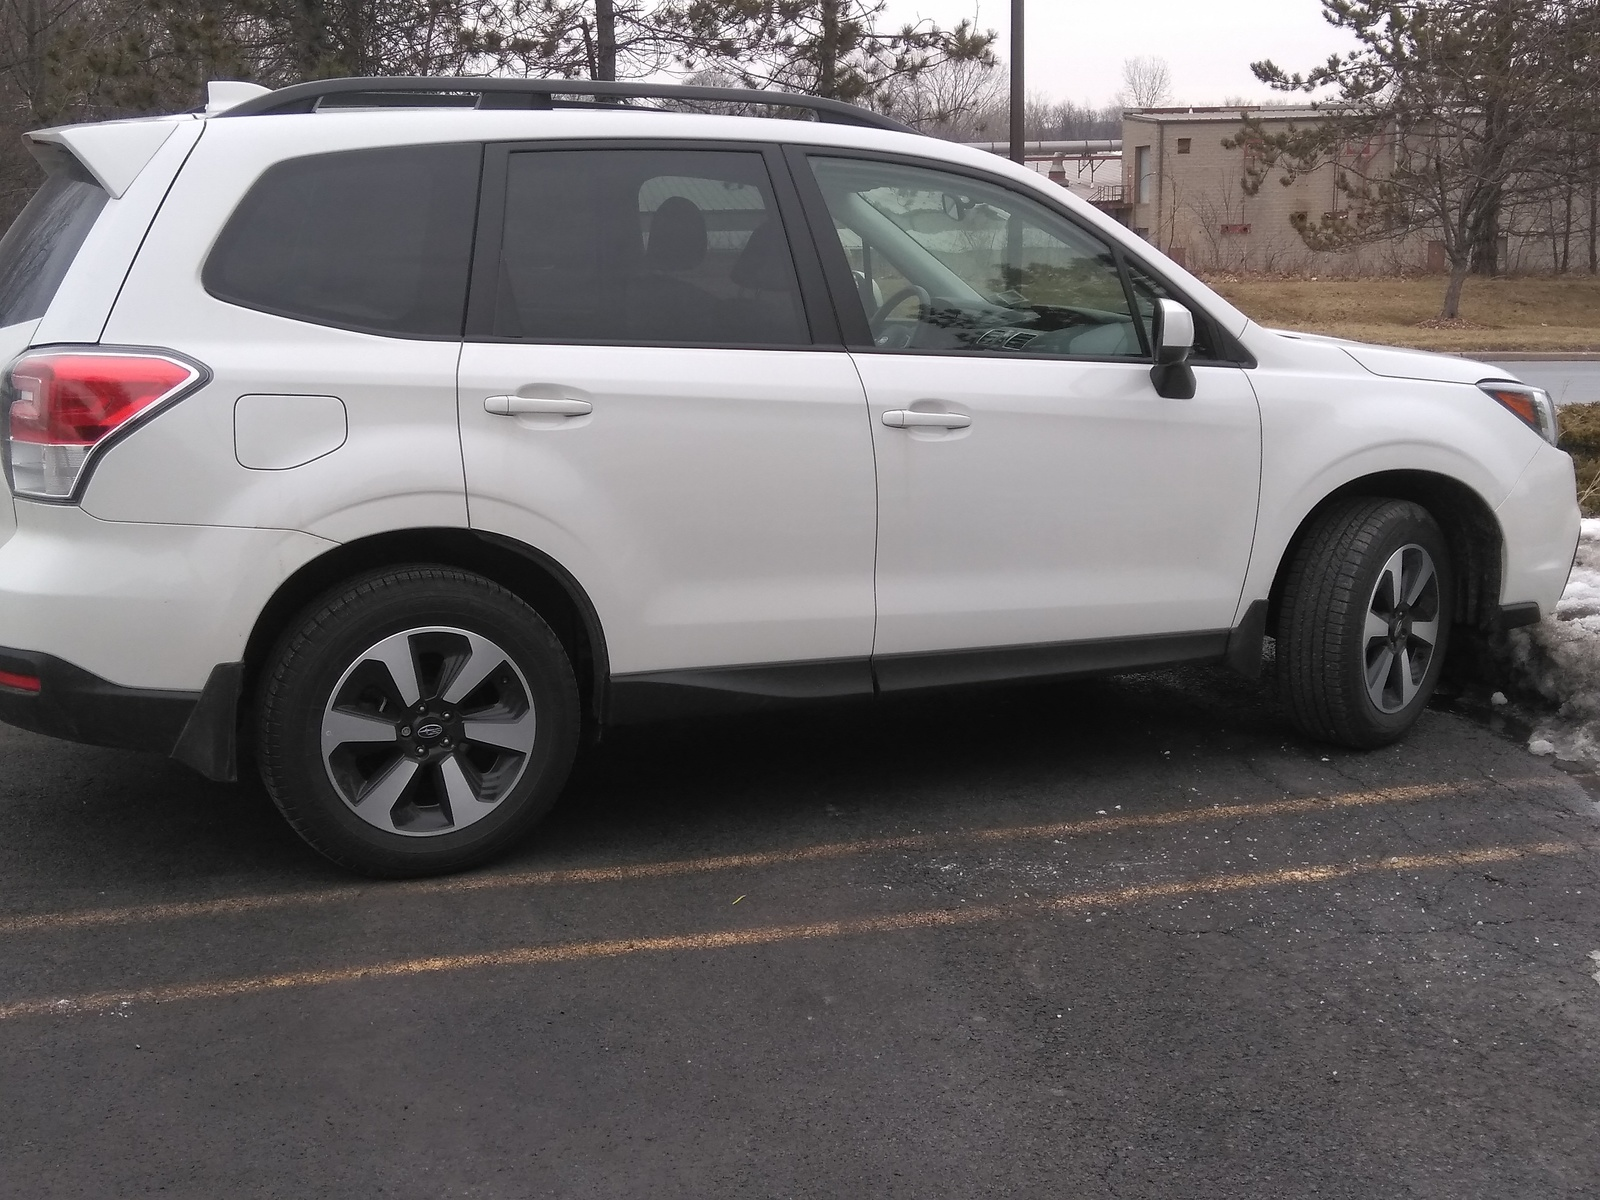 Subaru Forester Questions Forrester Oil Consumption Cargurus Saturn Transmission Lawsuit About Change And Over Filled It Above The Top Full Mark Said Bring Back In 1200 Miles More To Come But Is There Anything I Can Do Get This Corrected